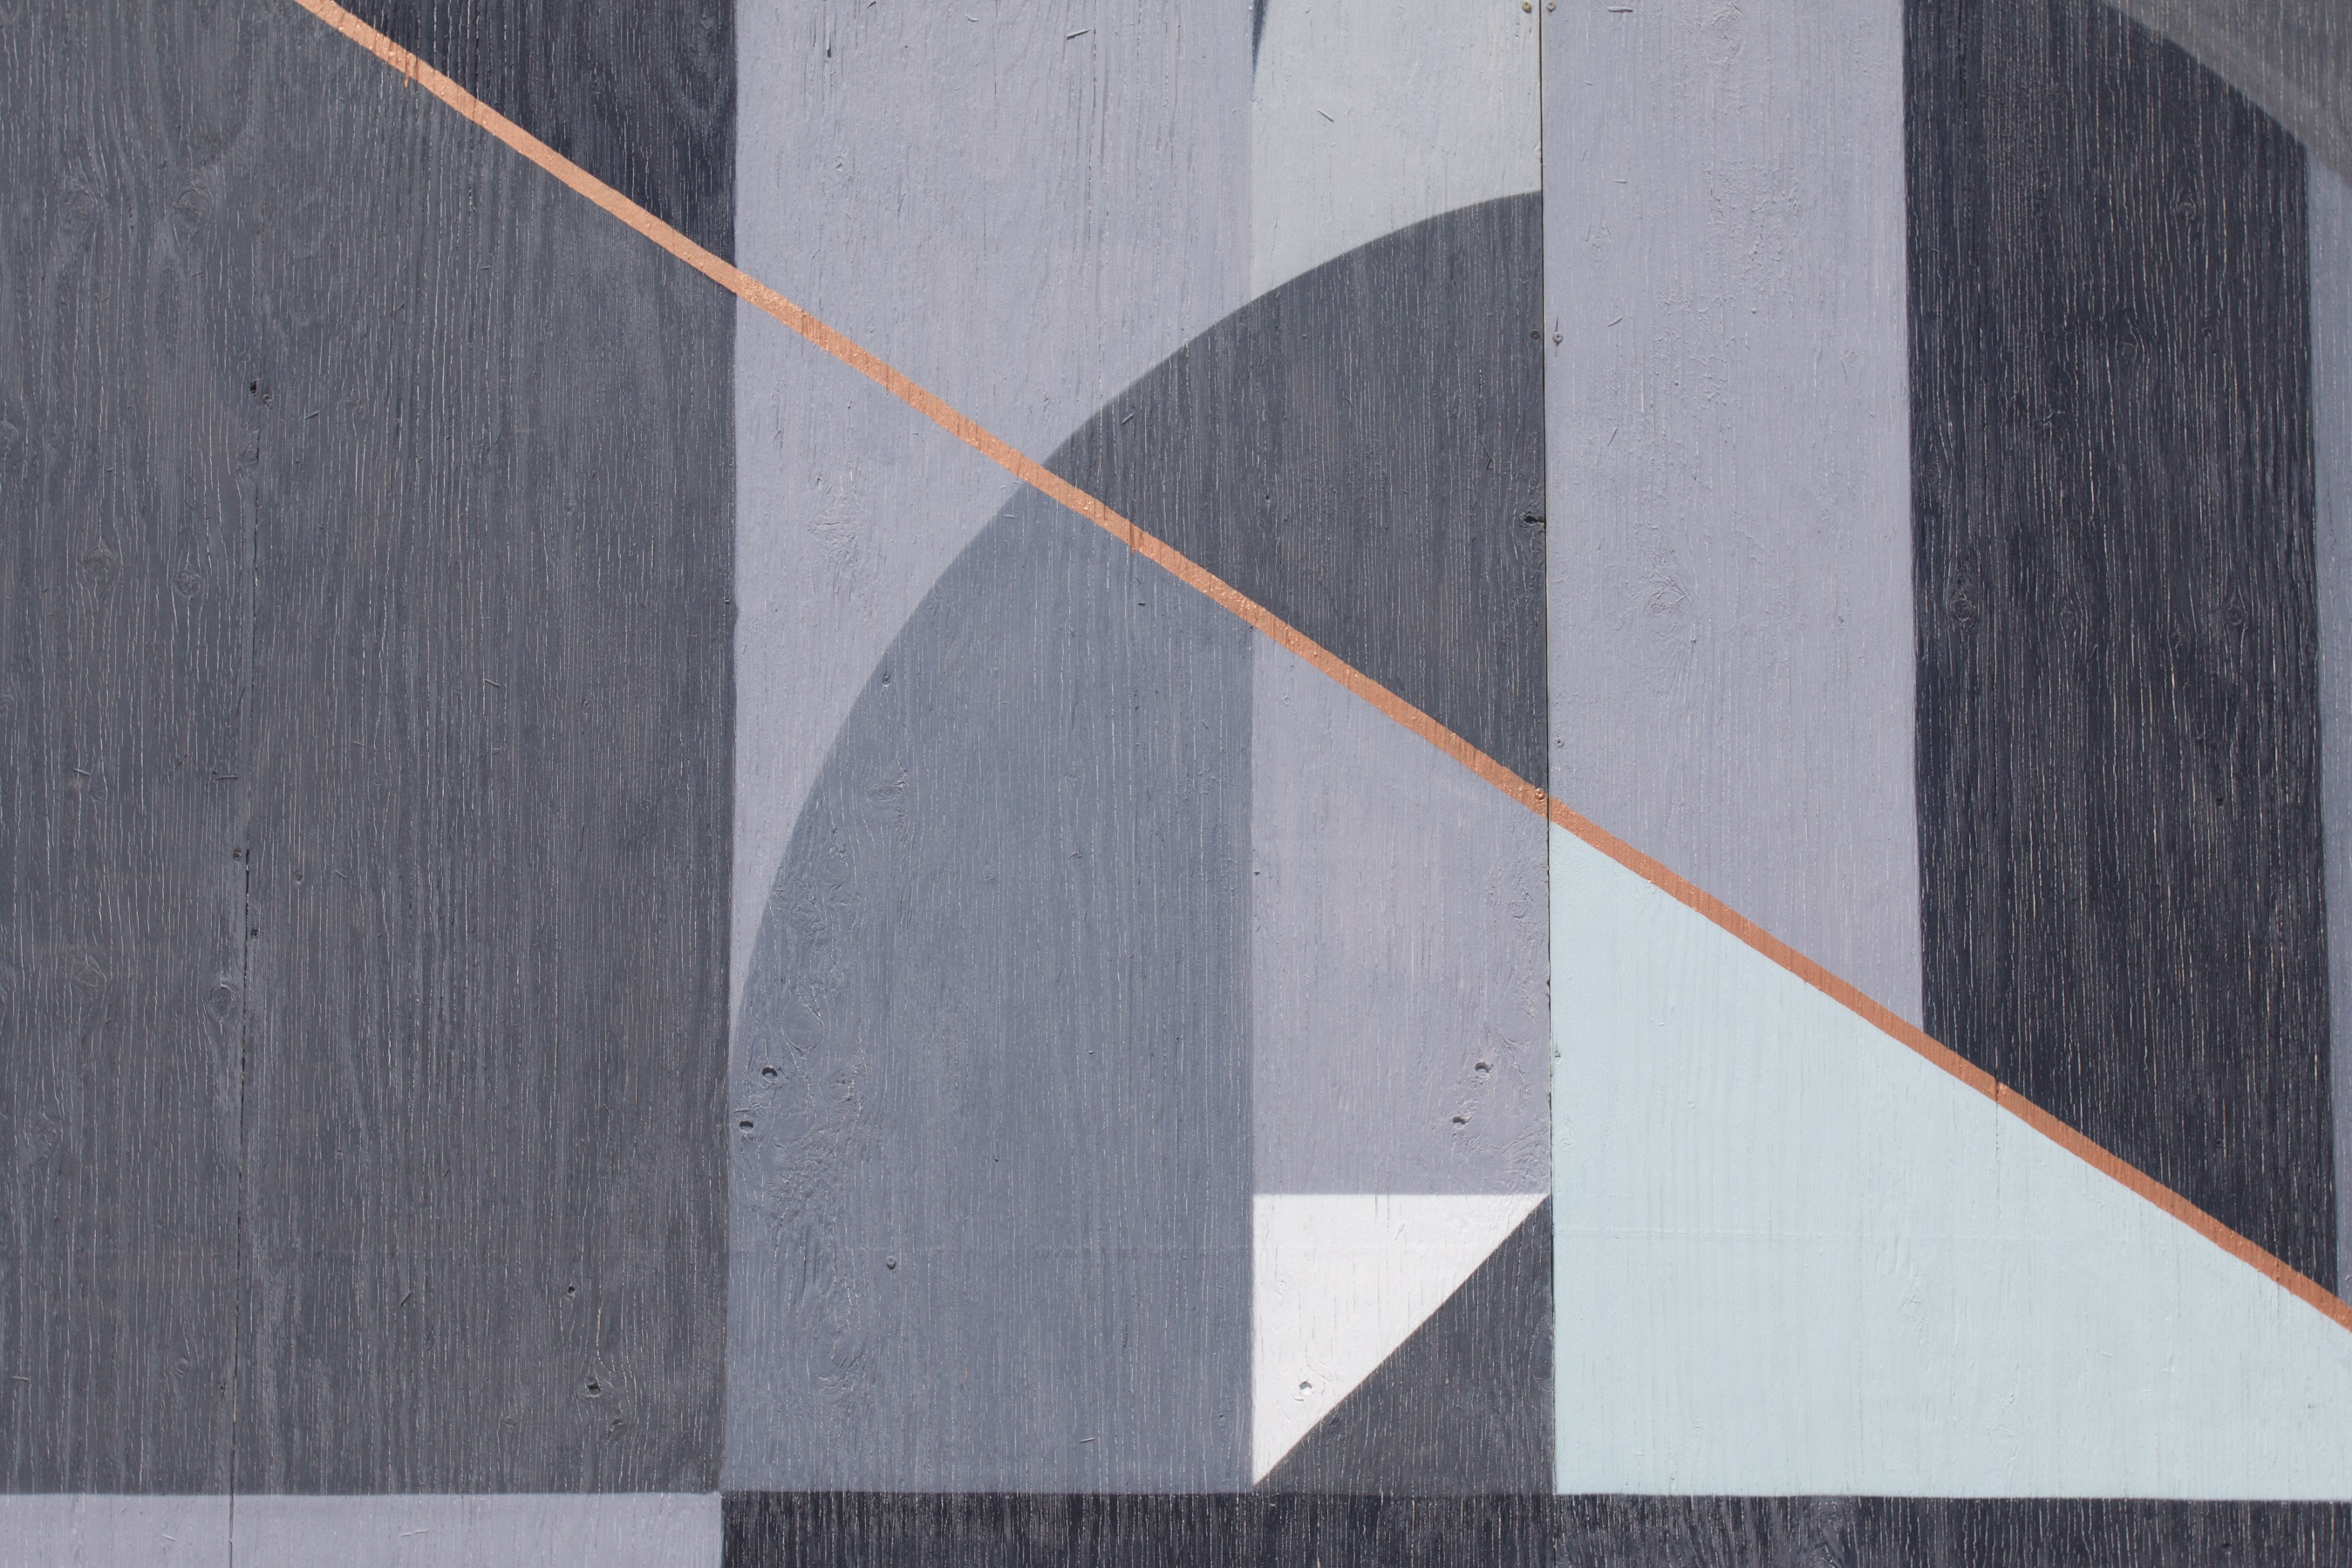 Gray and blue mural with shapes and lines.